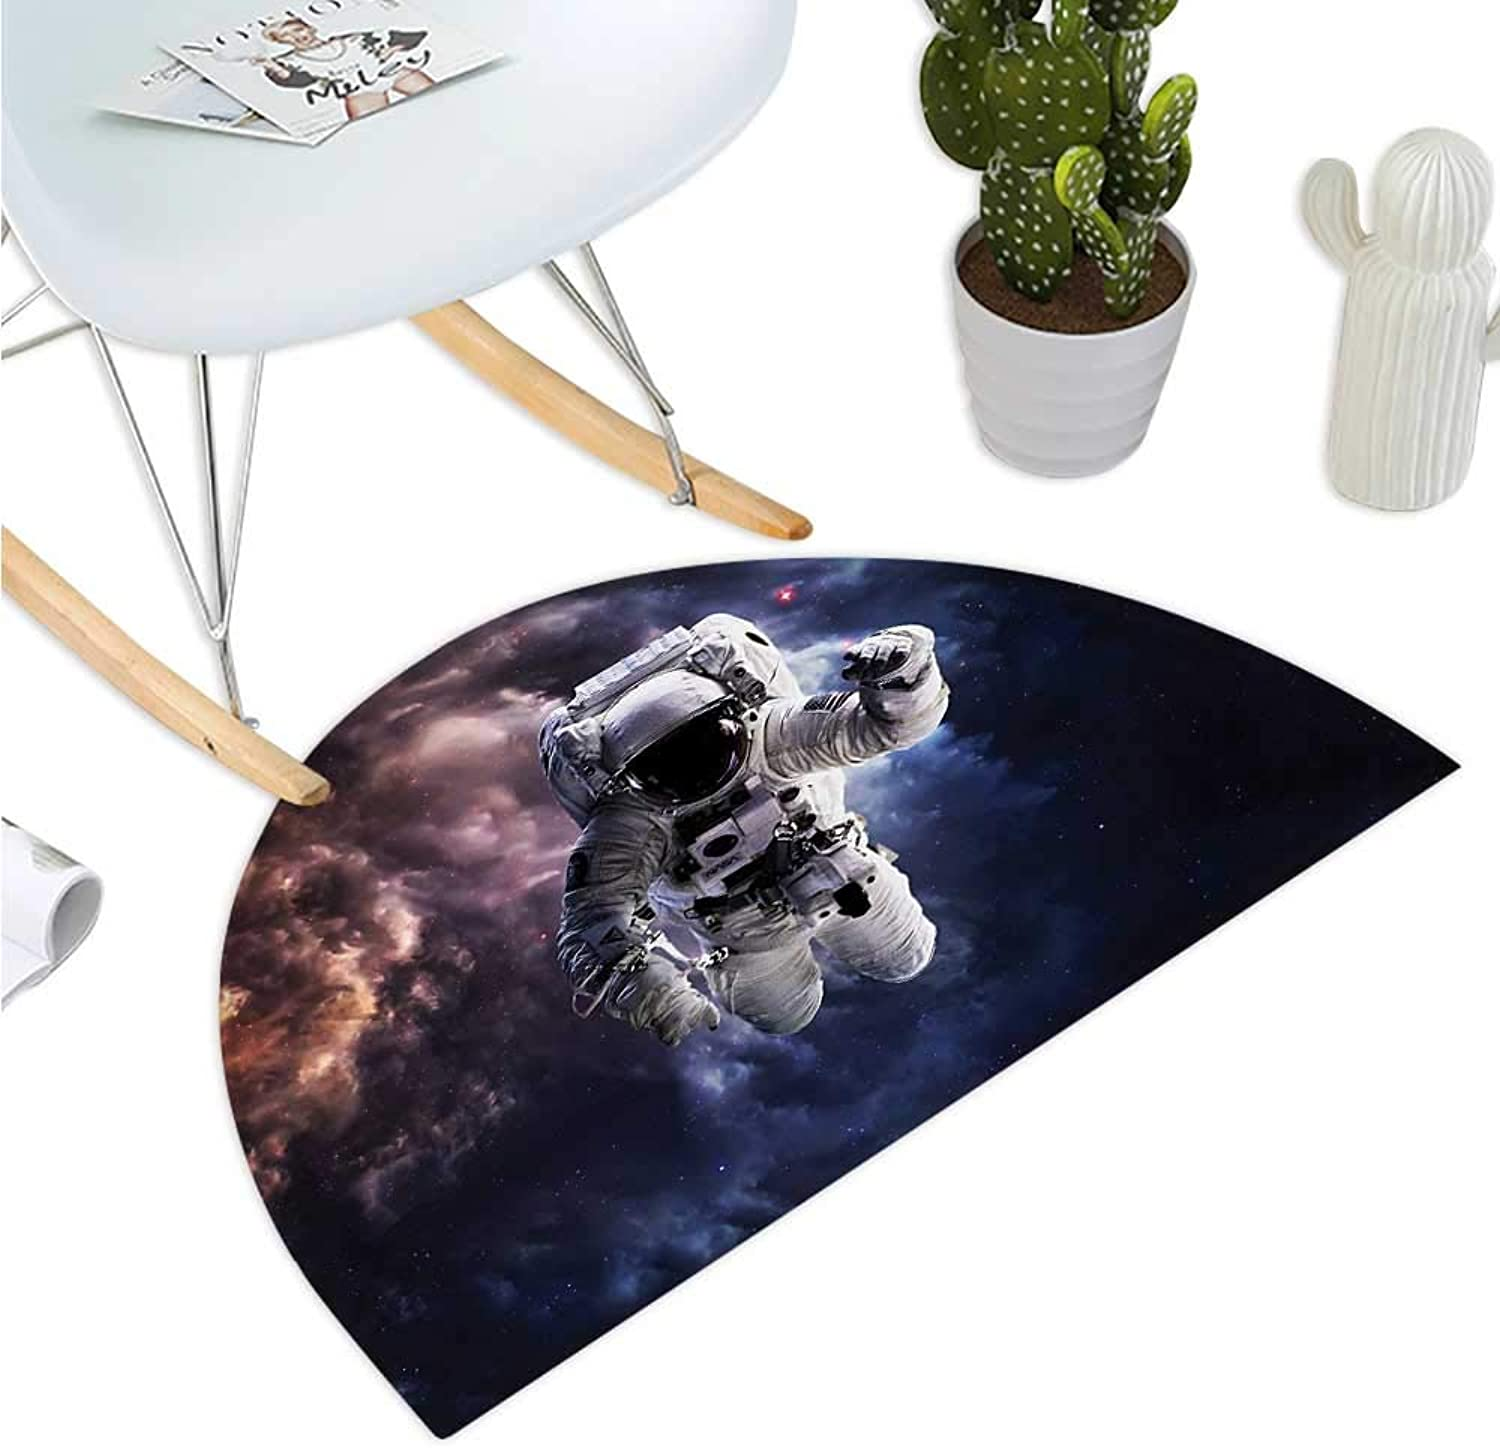 Astronaut Half Round Door mats Realistic Space Suit in Space Hovering in Emptiness Space Clouds Stars Bathroom Mat H 47.2  xD 70.8  Night bluee Multicolor